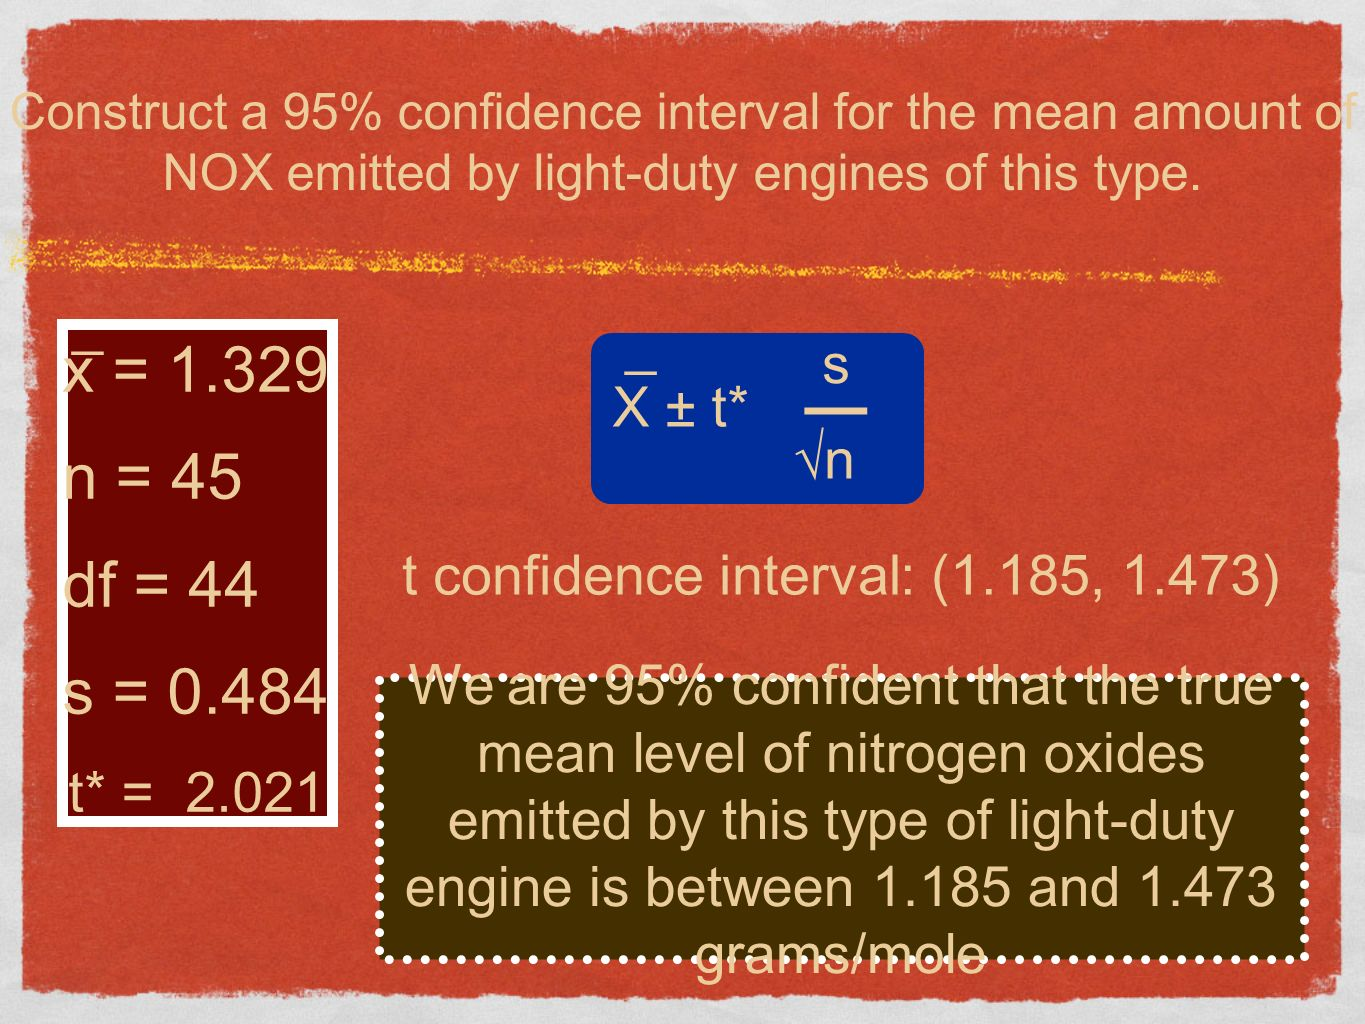 Construct a 95% confidence interval for the mean amount of NOX emitted by light-duty engines of this type.